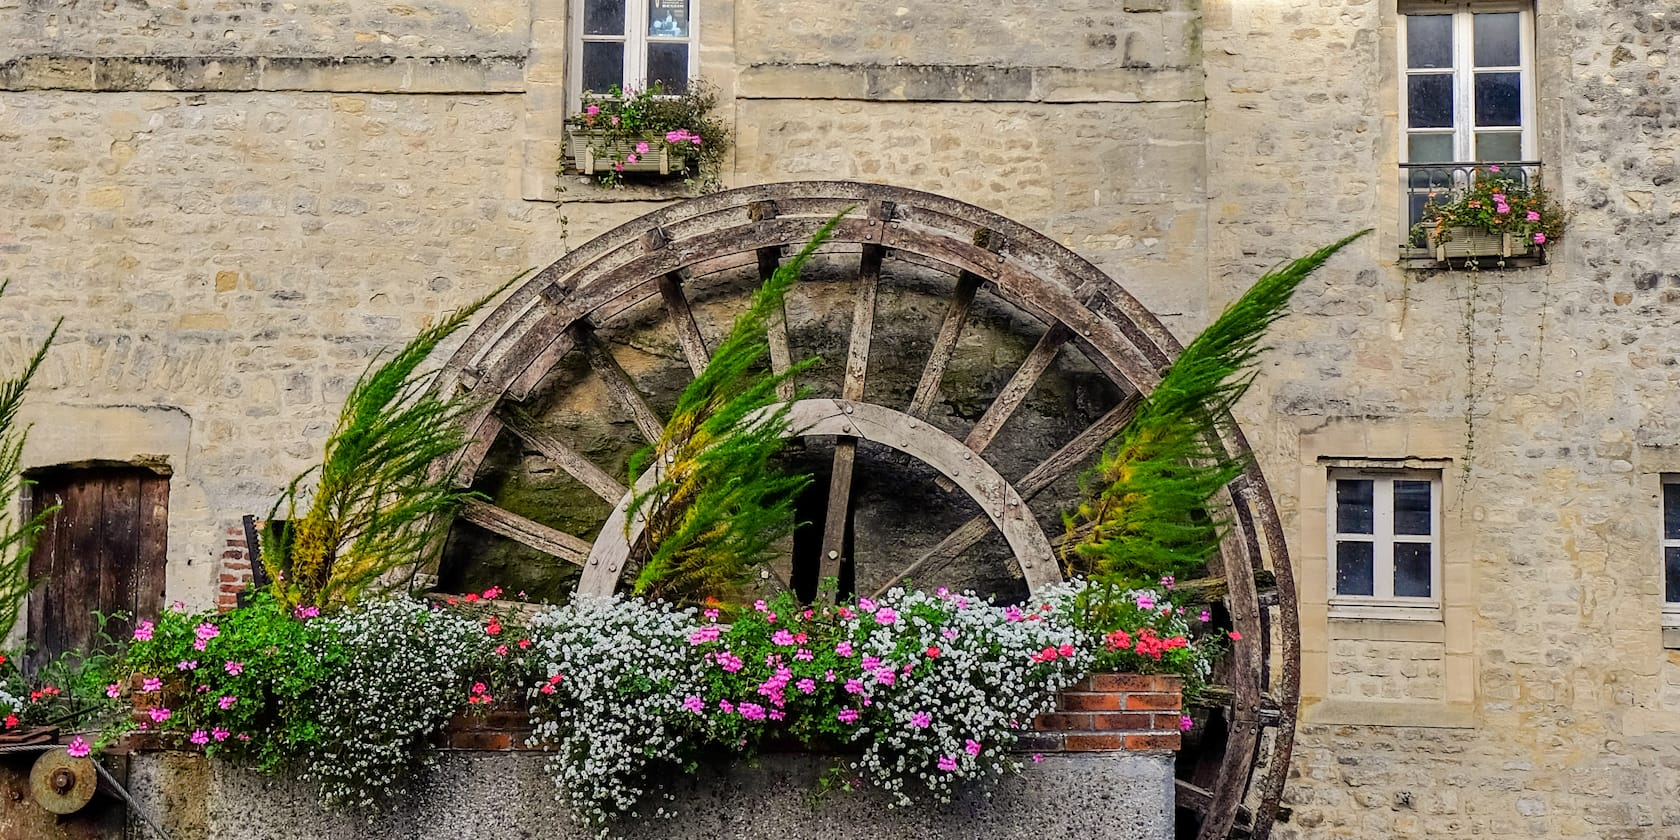 Plants and flowers in a planter in front of a mill wheel that is next to an old brick building